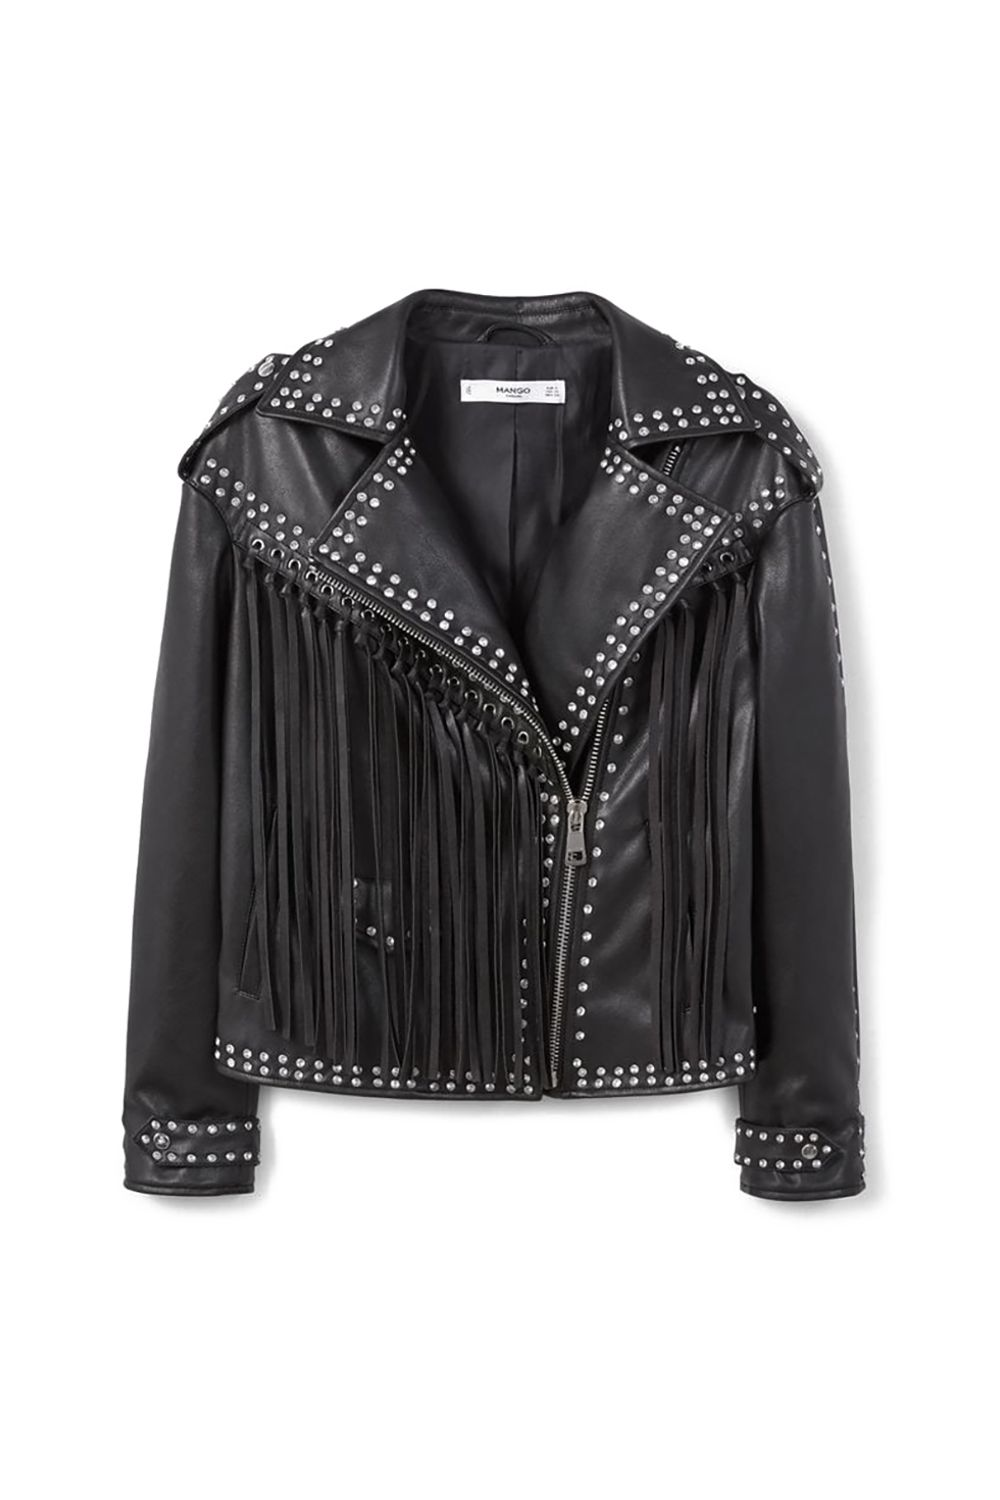 10 Best Cheap Leather Jackets of 2017 - Fall Leather Jackets Under ...